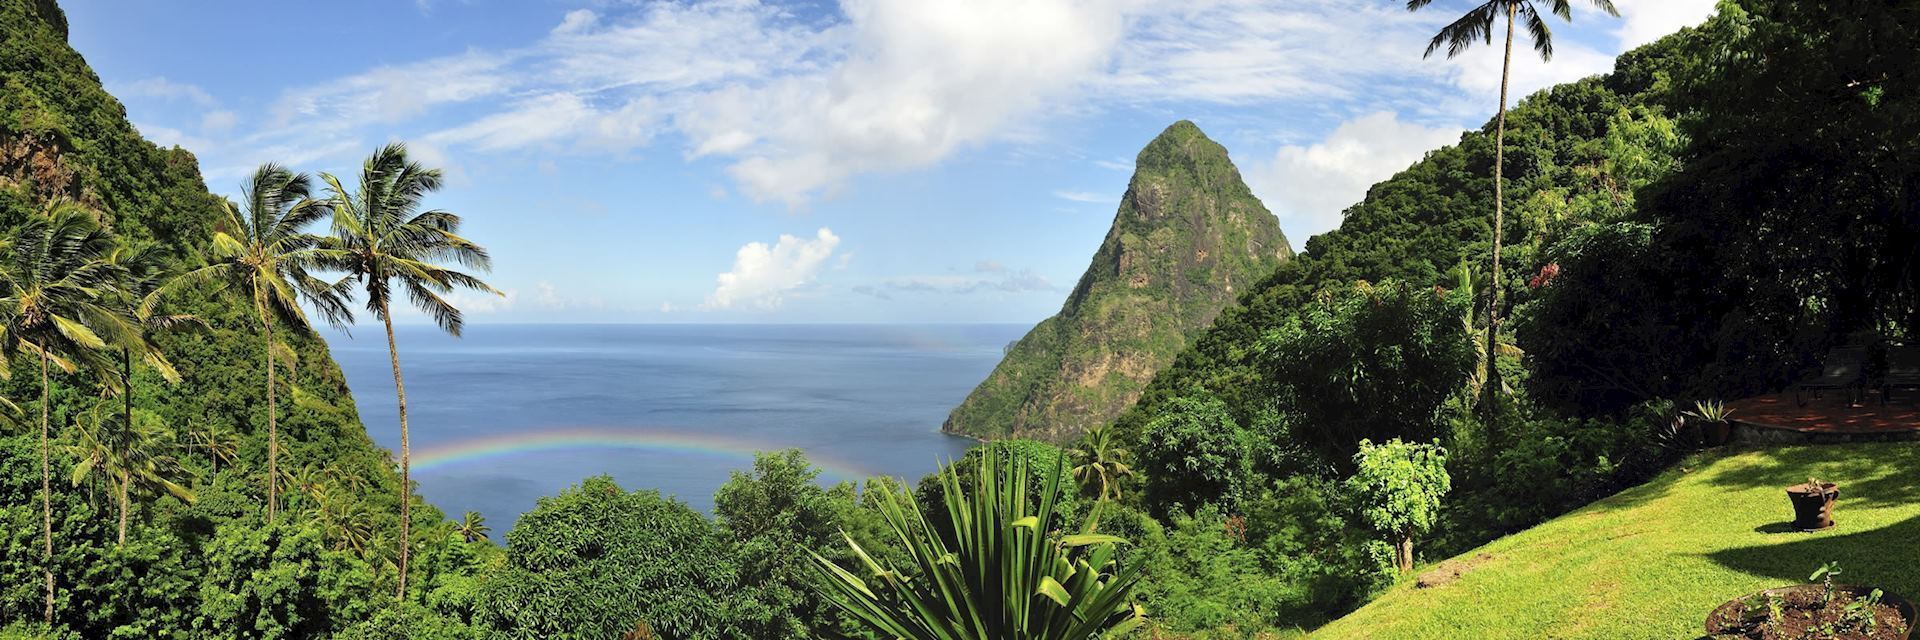 One of the two Pitons (volcanic mountains) on St Lucia